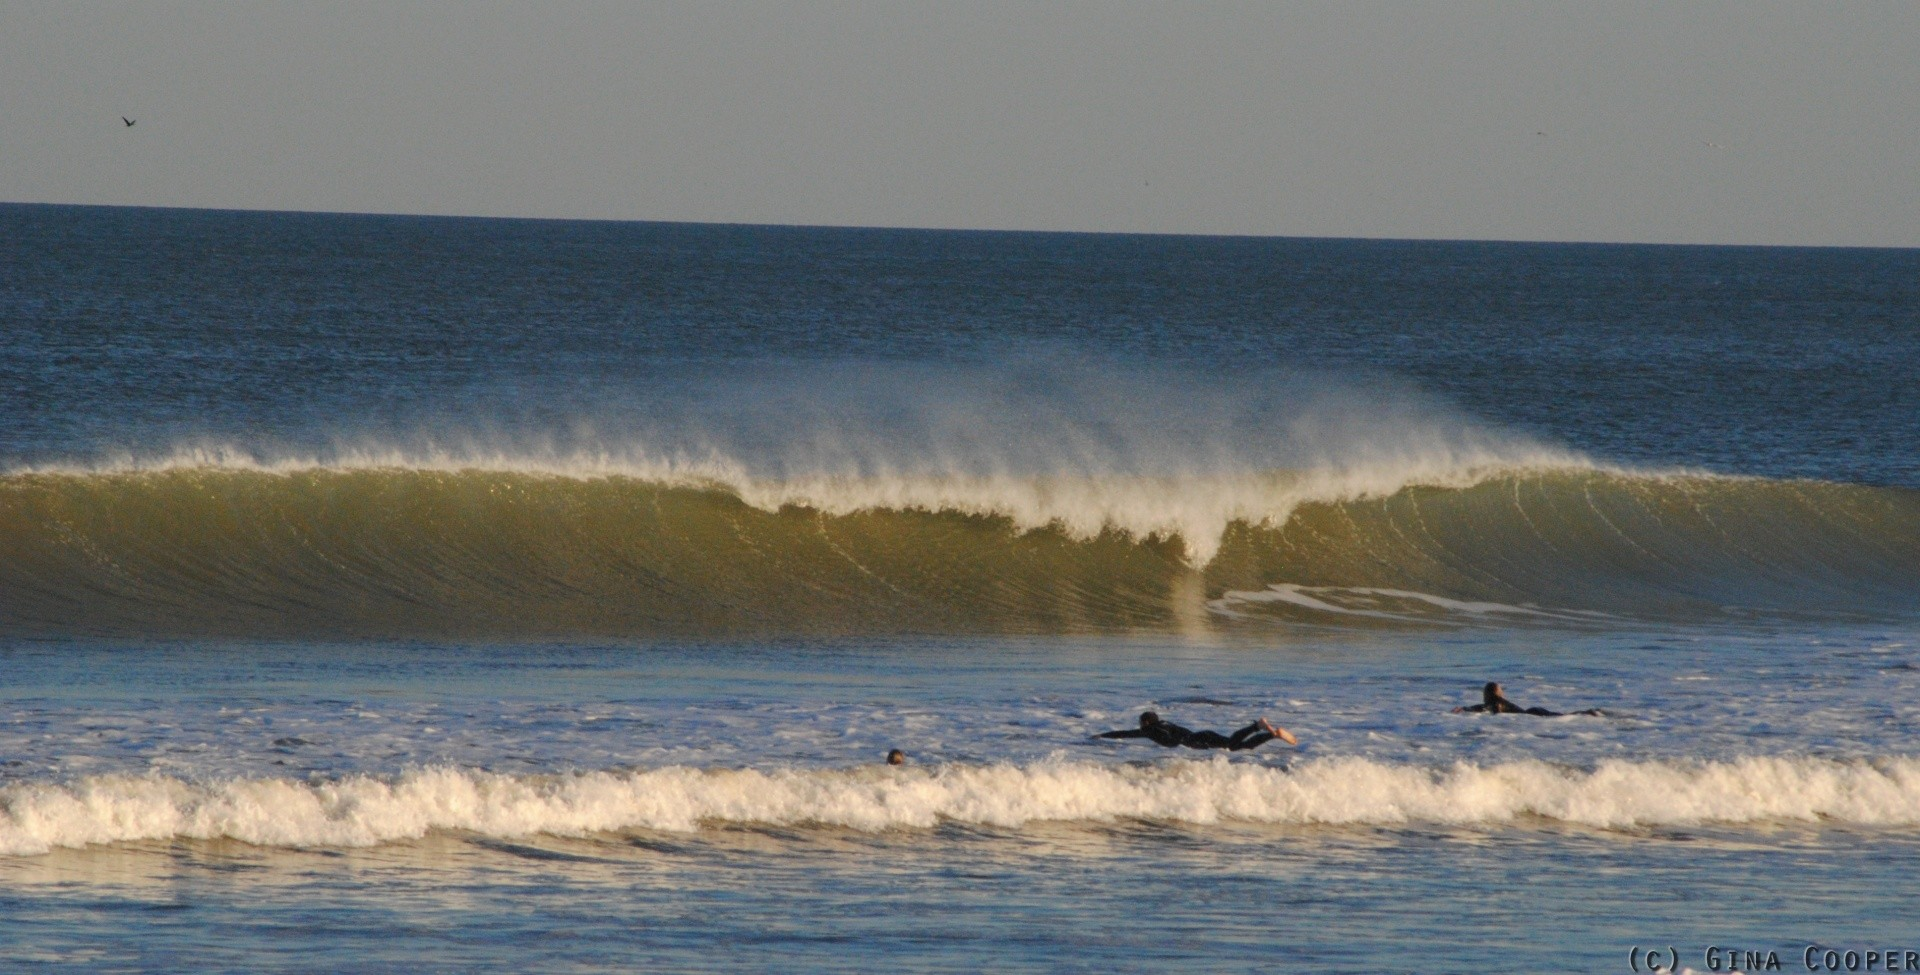 ginacooper's photo of Jacksonville Beach